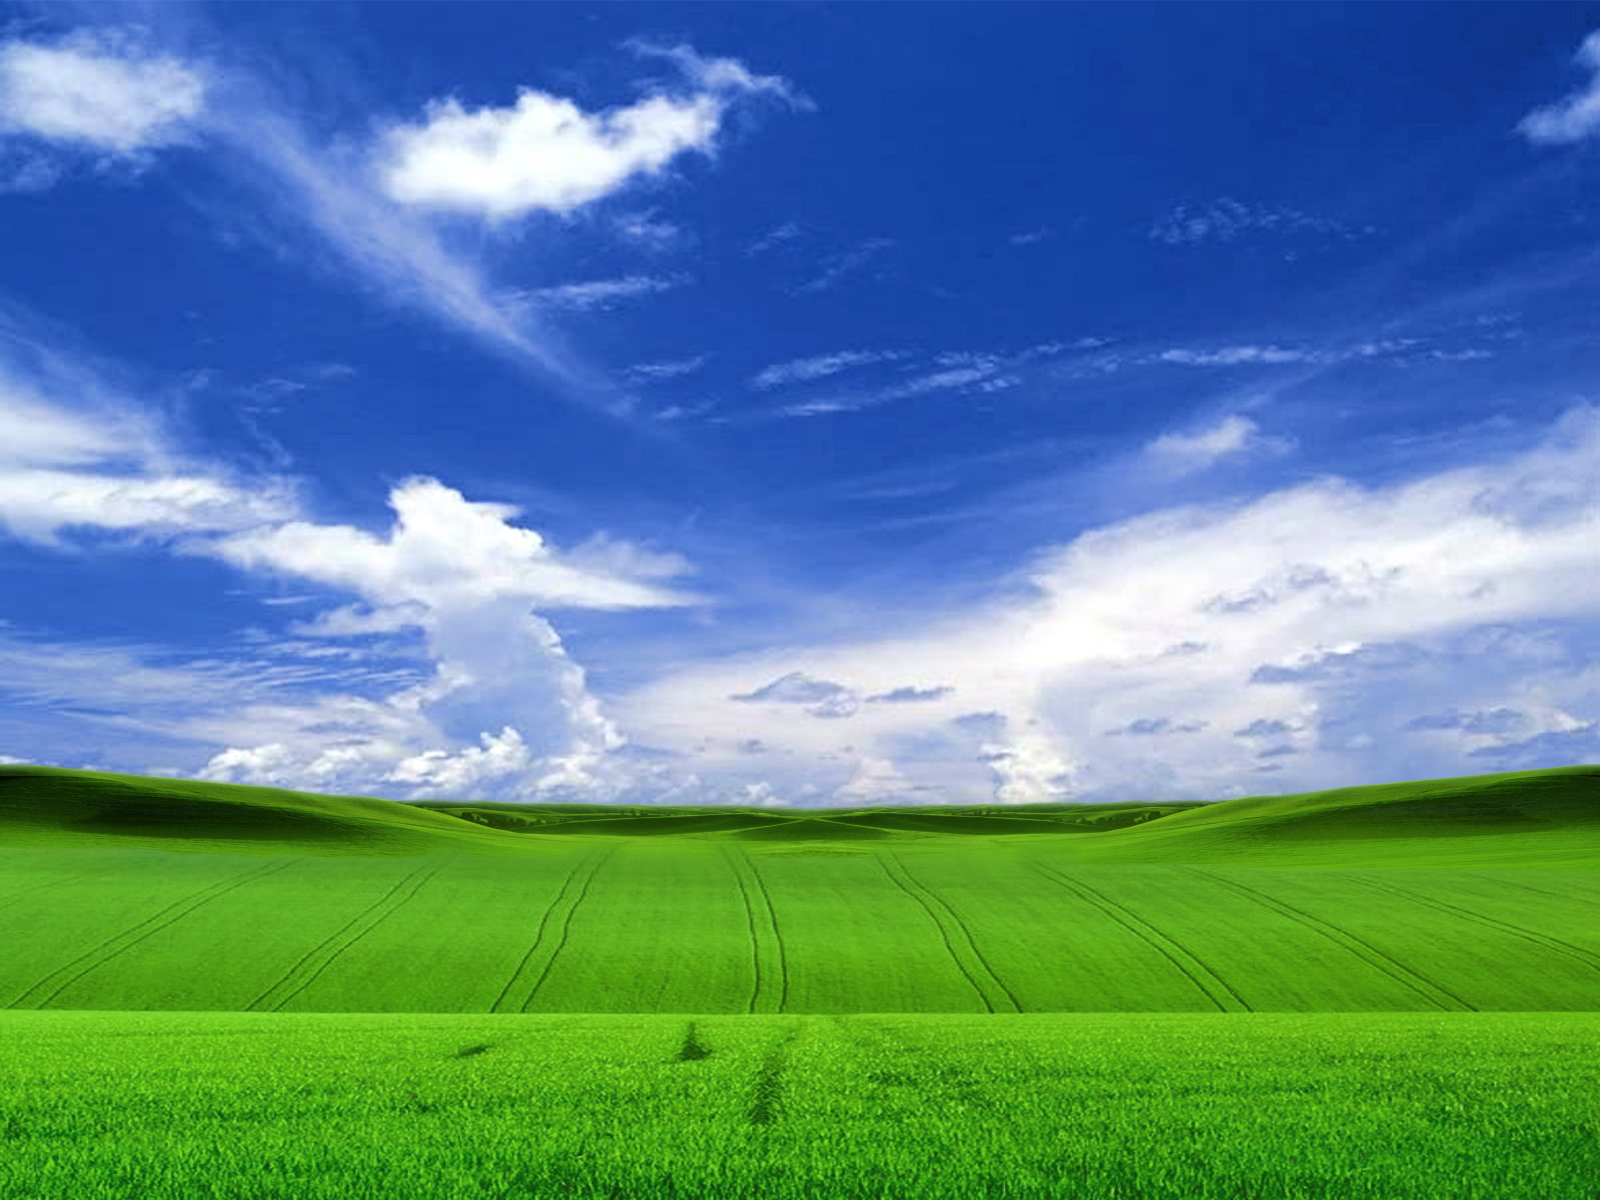 Windows Xp HD Wallpaper   Wallpapers 1600x1200